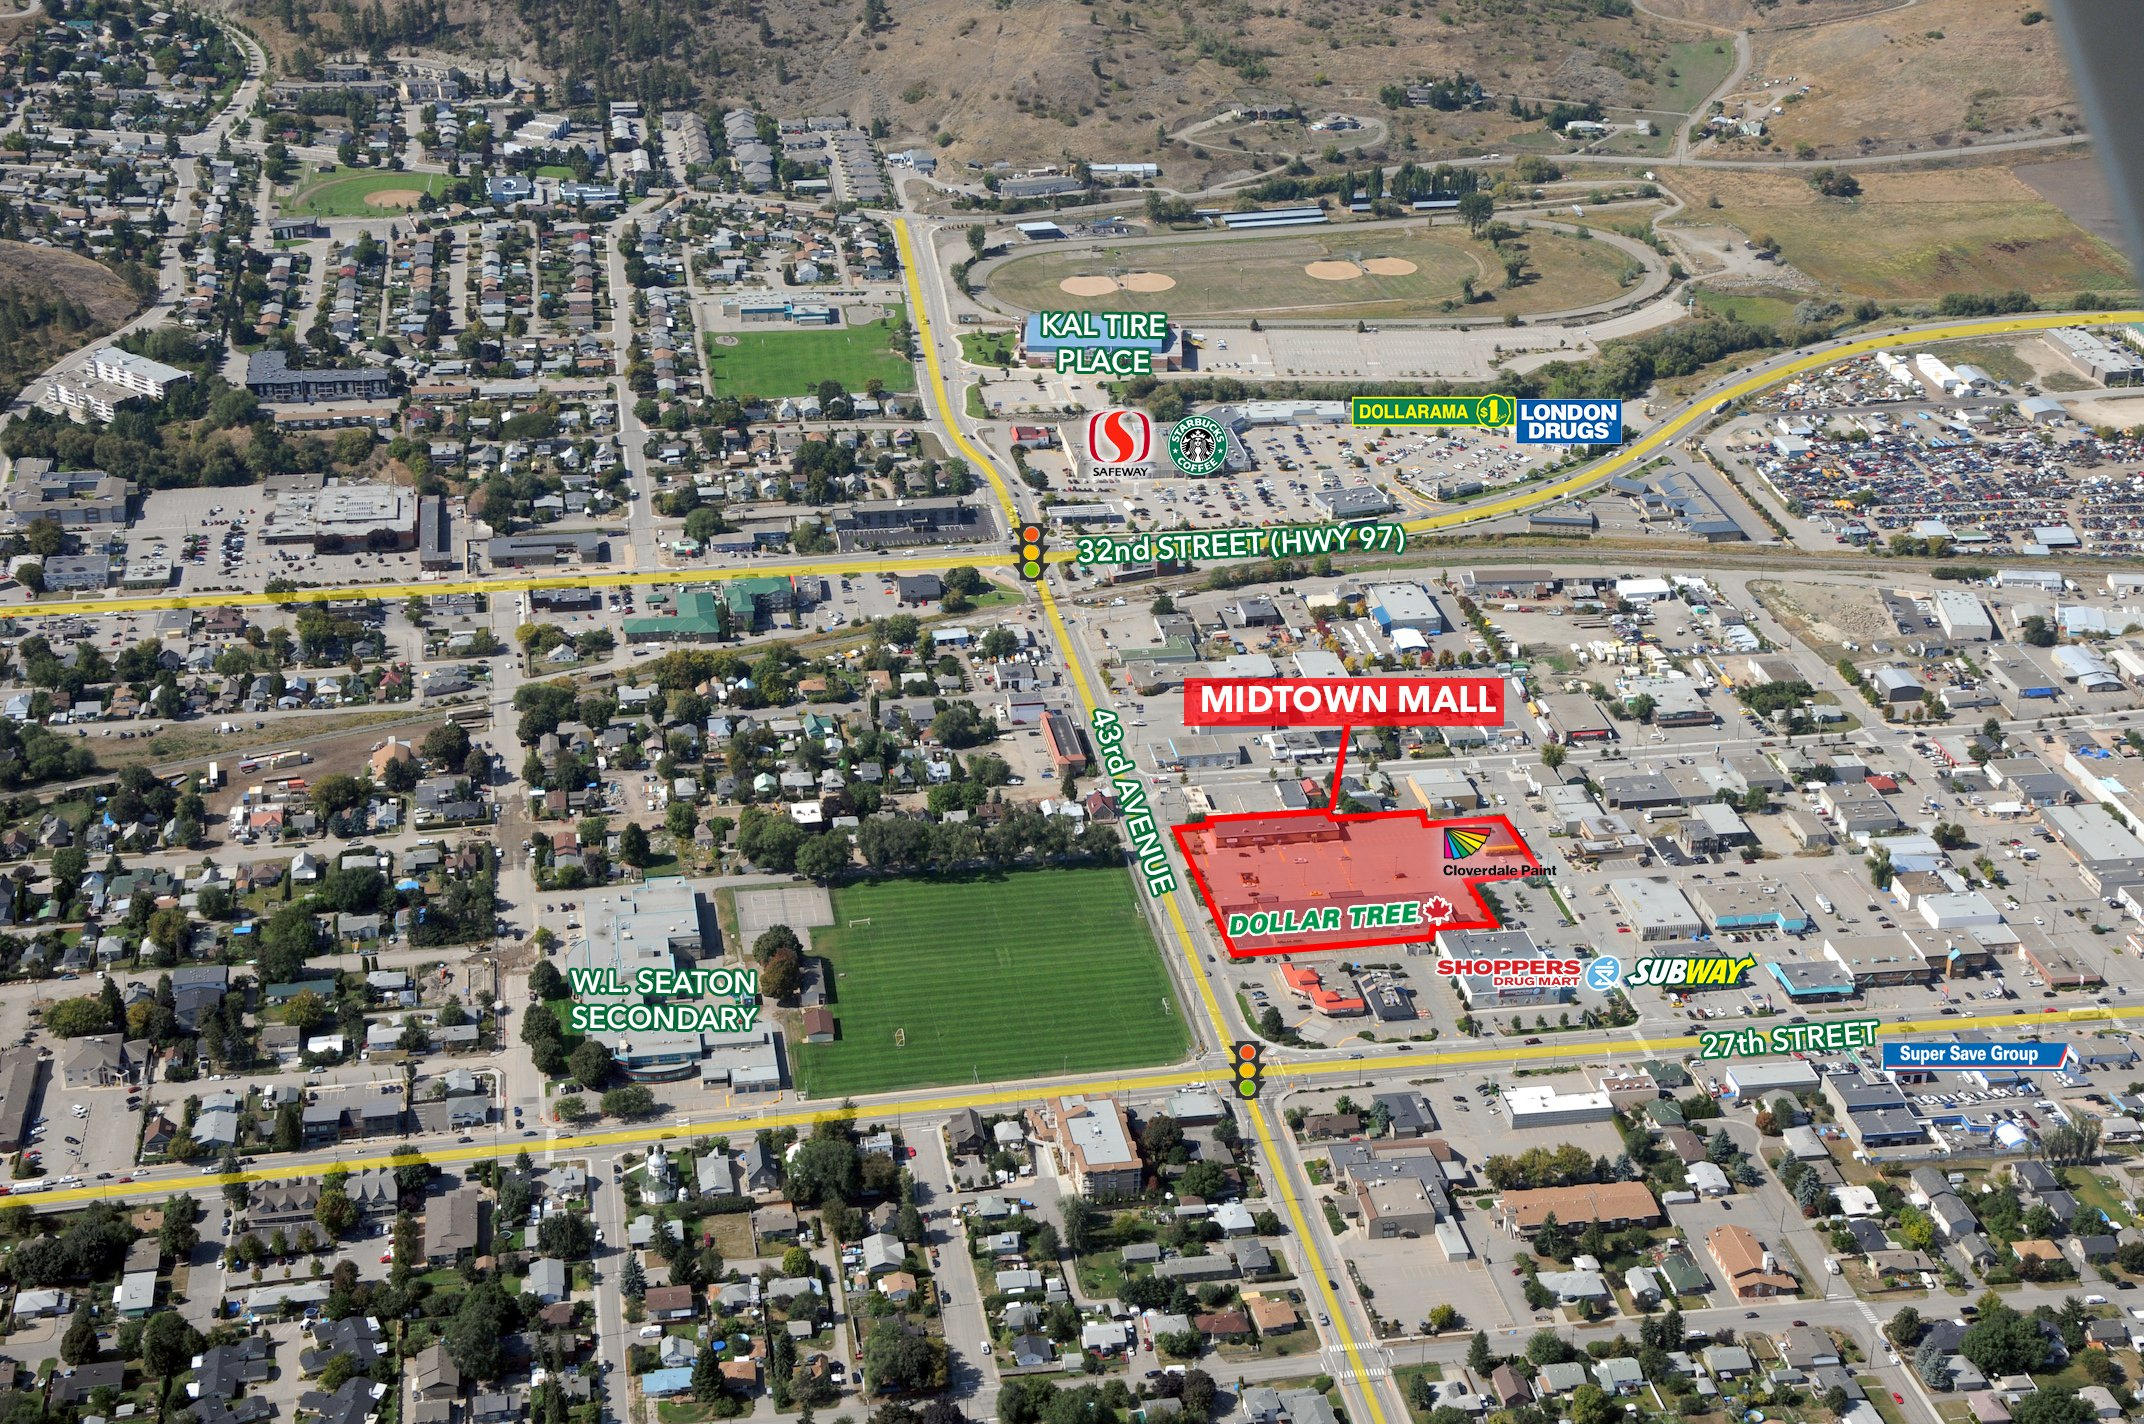 2707 43rd Avenue, Vernon, BC - Midtown Mall Build to Suit Opportunities